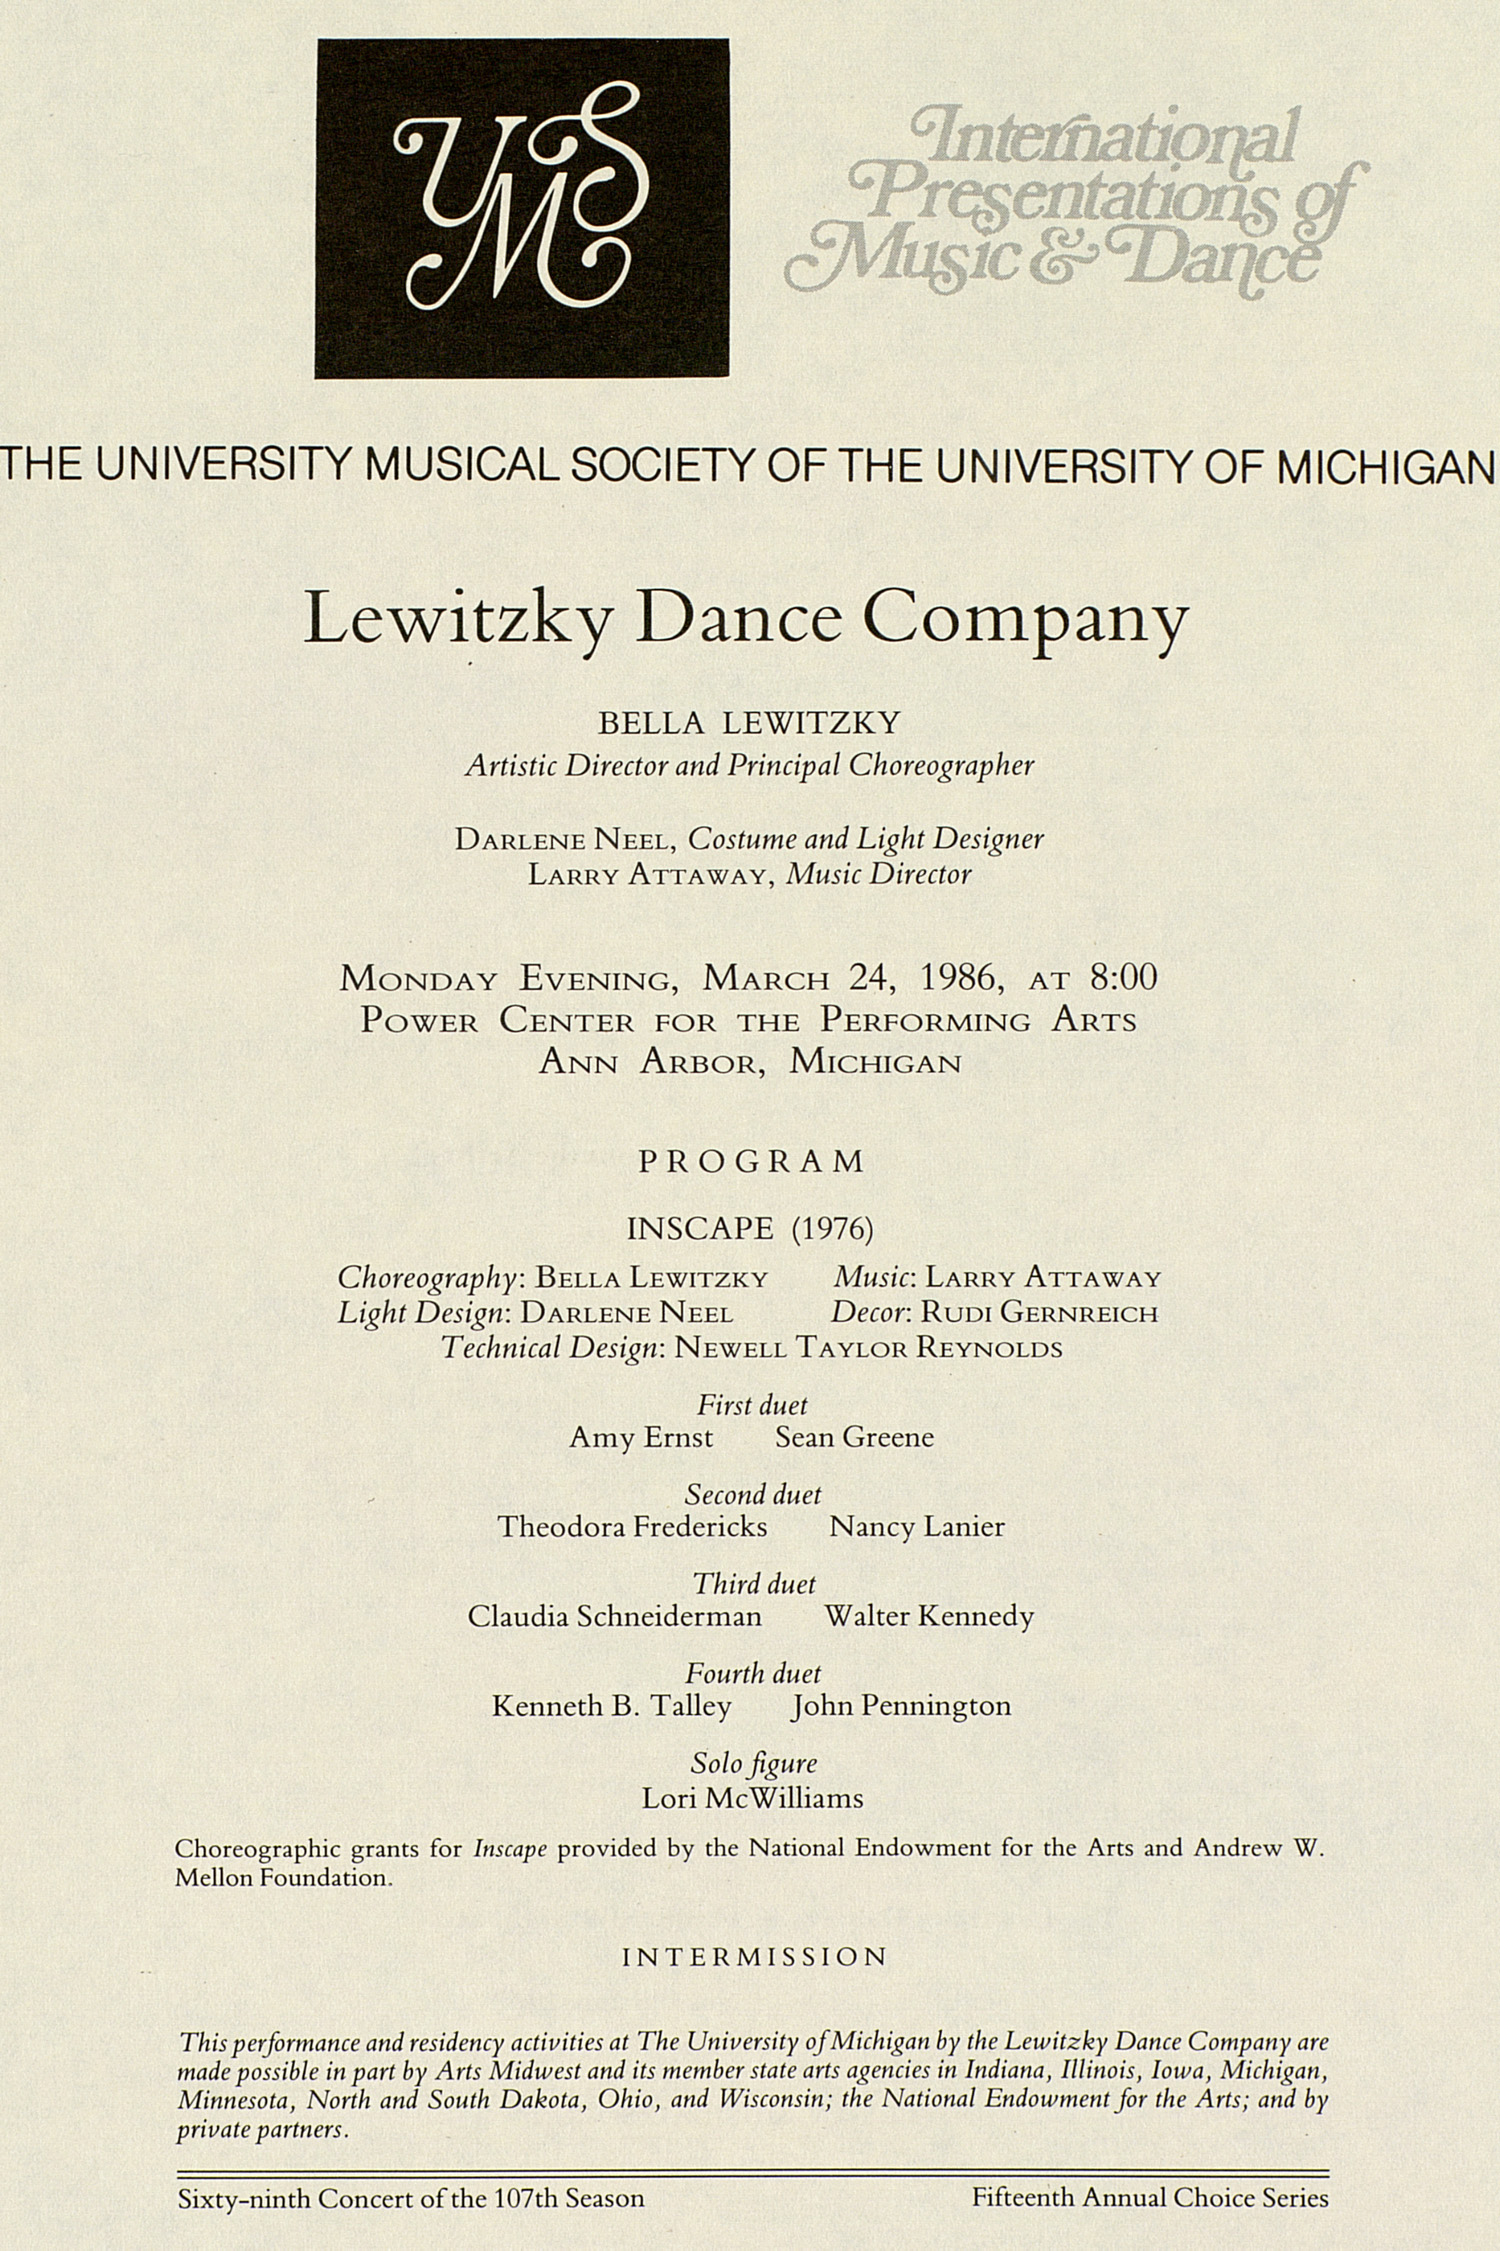 UMS Concert Program, March 24, 1986: International Presentations Of Music & Dance -- Lewitzky Dance Company image